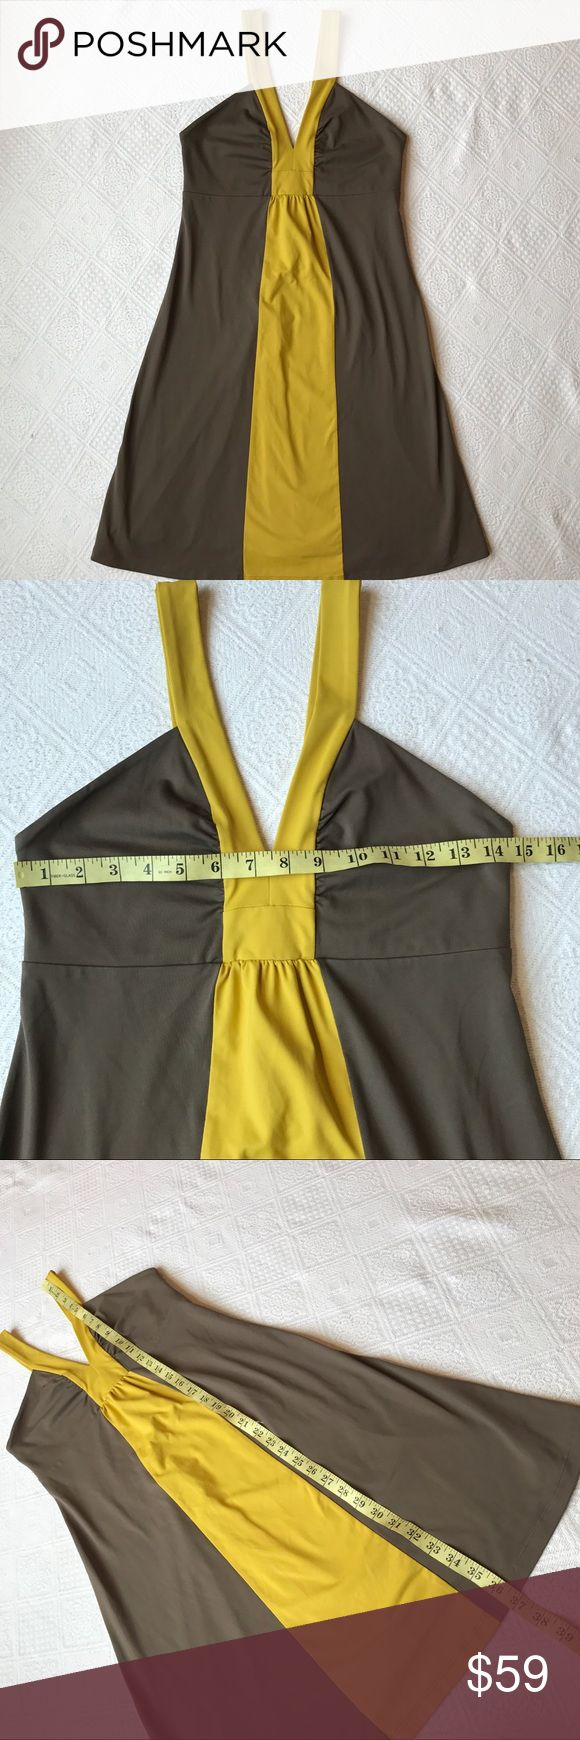 Patagonia Dress size medium flattering color block This dress is a great fabric. Super comfortable and durable for movement. 86% nylon. Flattering color block design. Patagonia Dresses